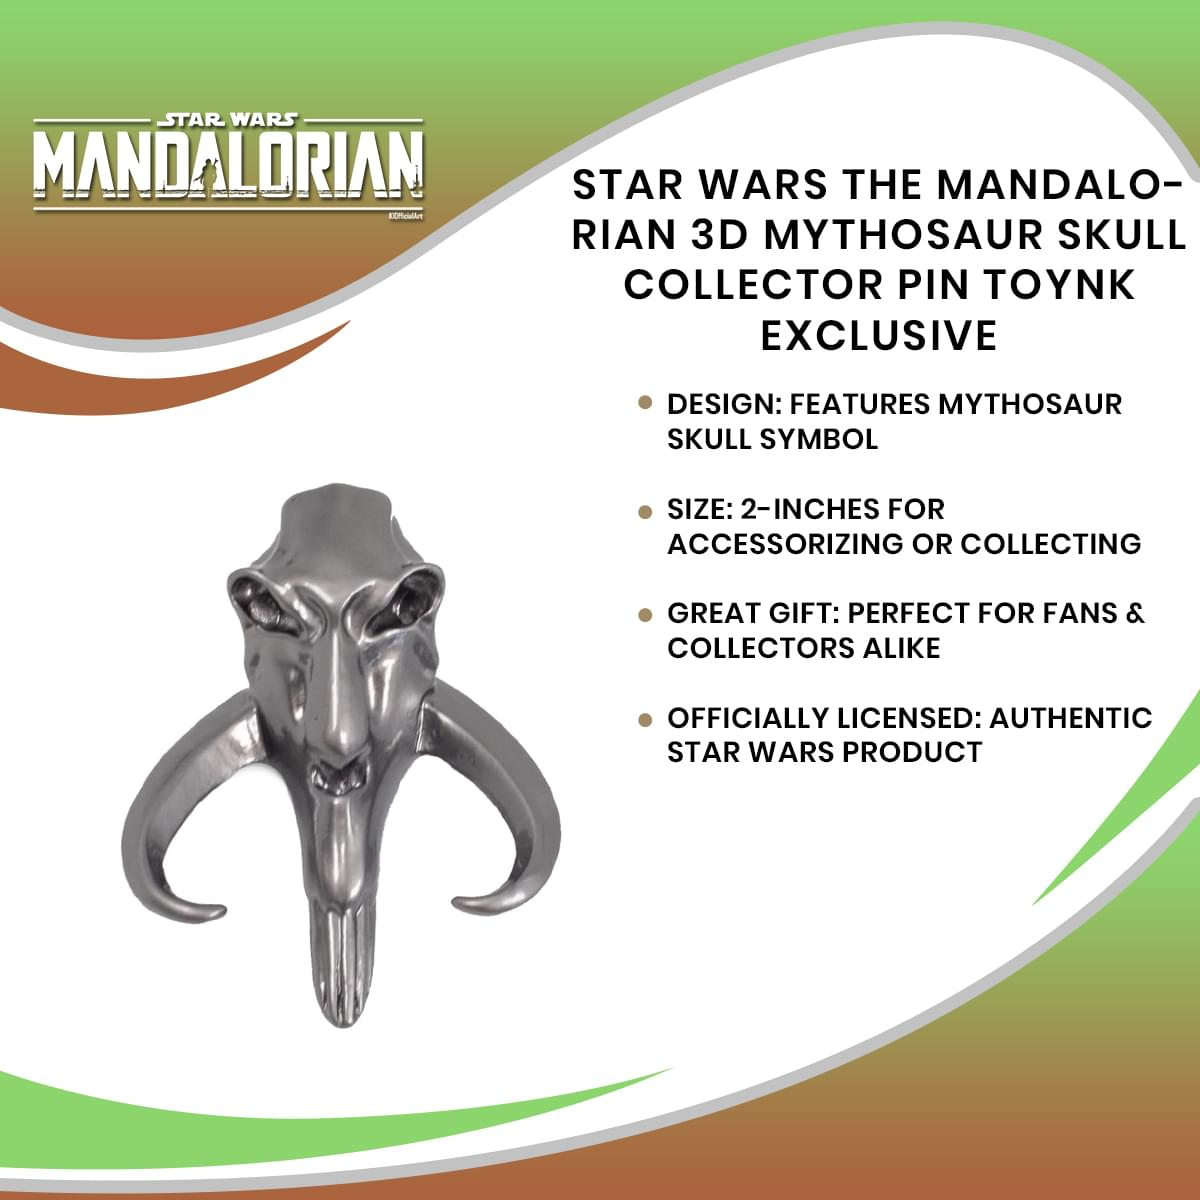 Star Wars The Mandalorian 3D Mythosaur Skull Collector Pin Toynk Exclusive